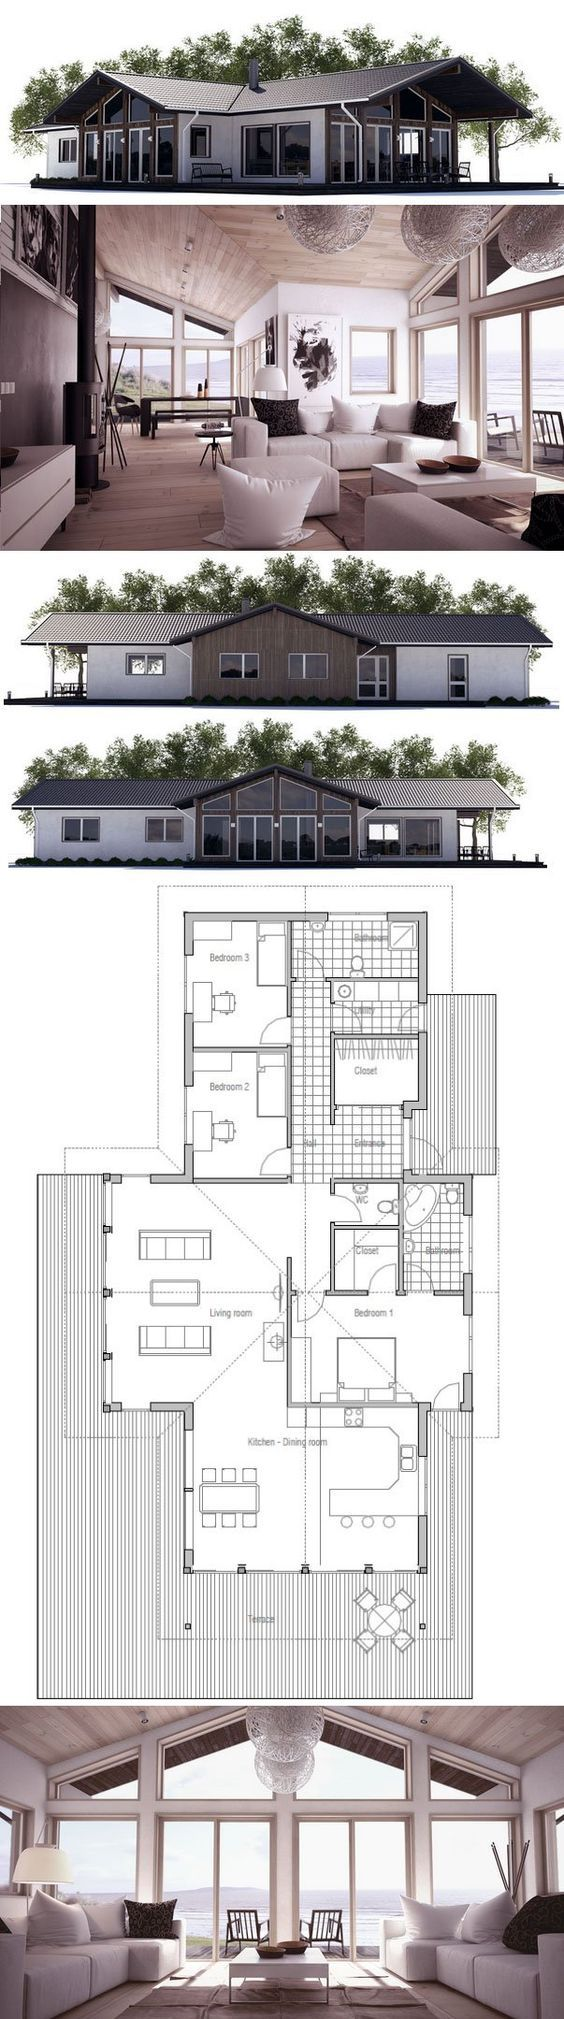 112 best house plan images on pinterest house floor plans floor small house plan with three bedrooms and open planning floor plan from concepthome